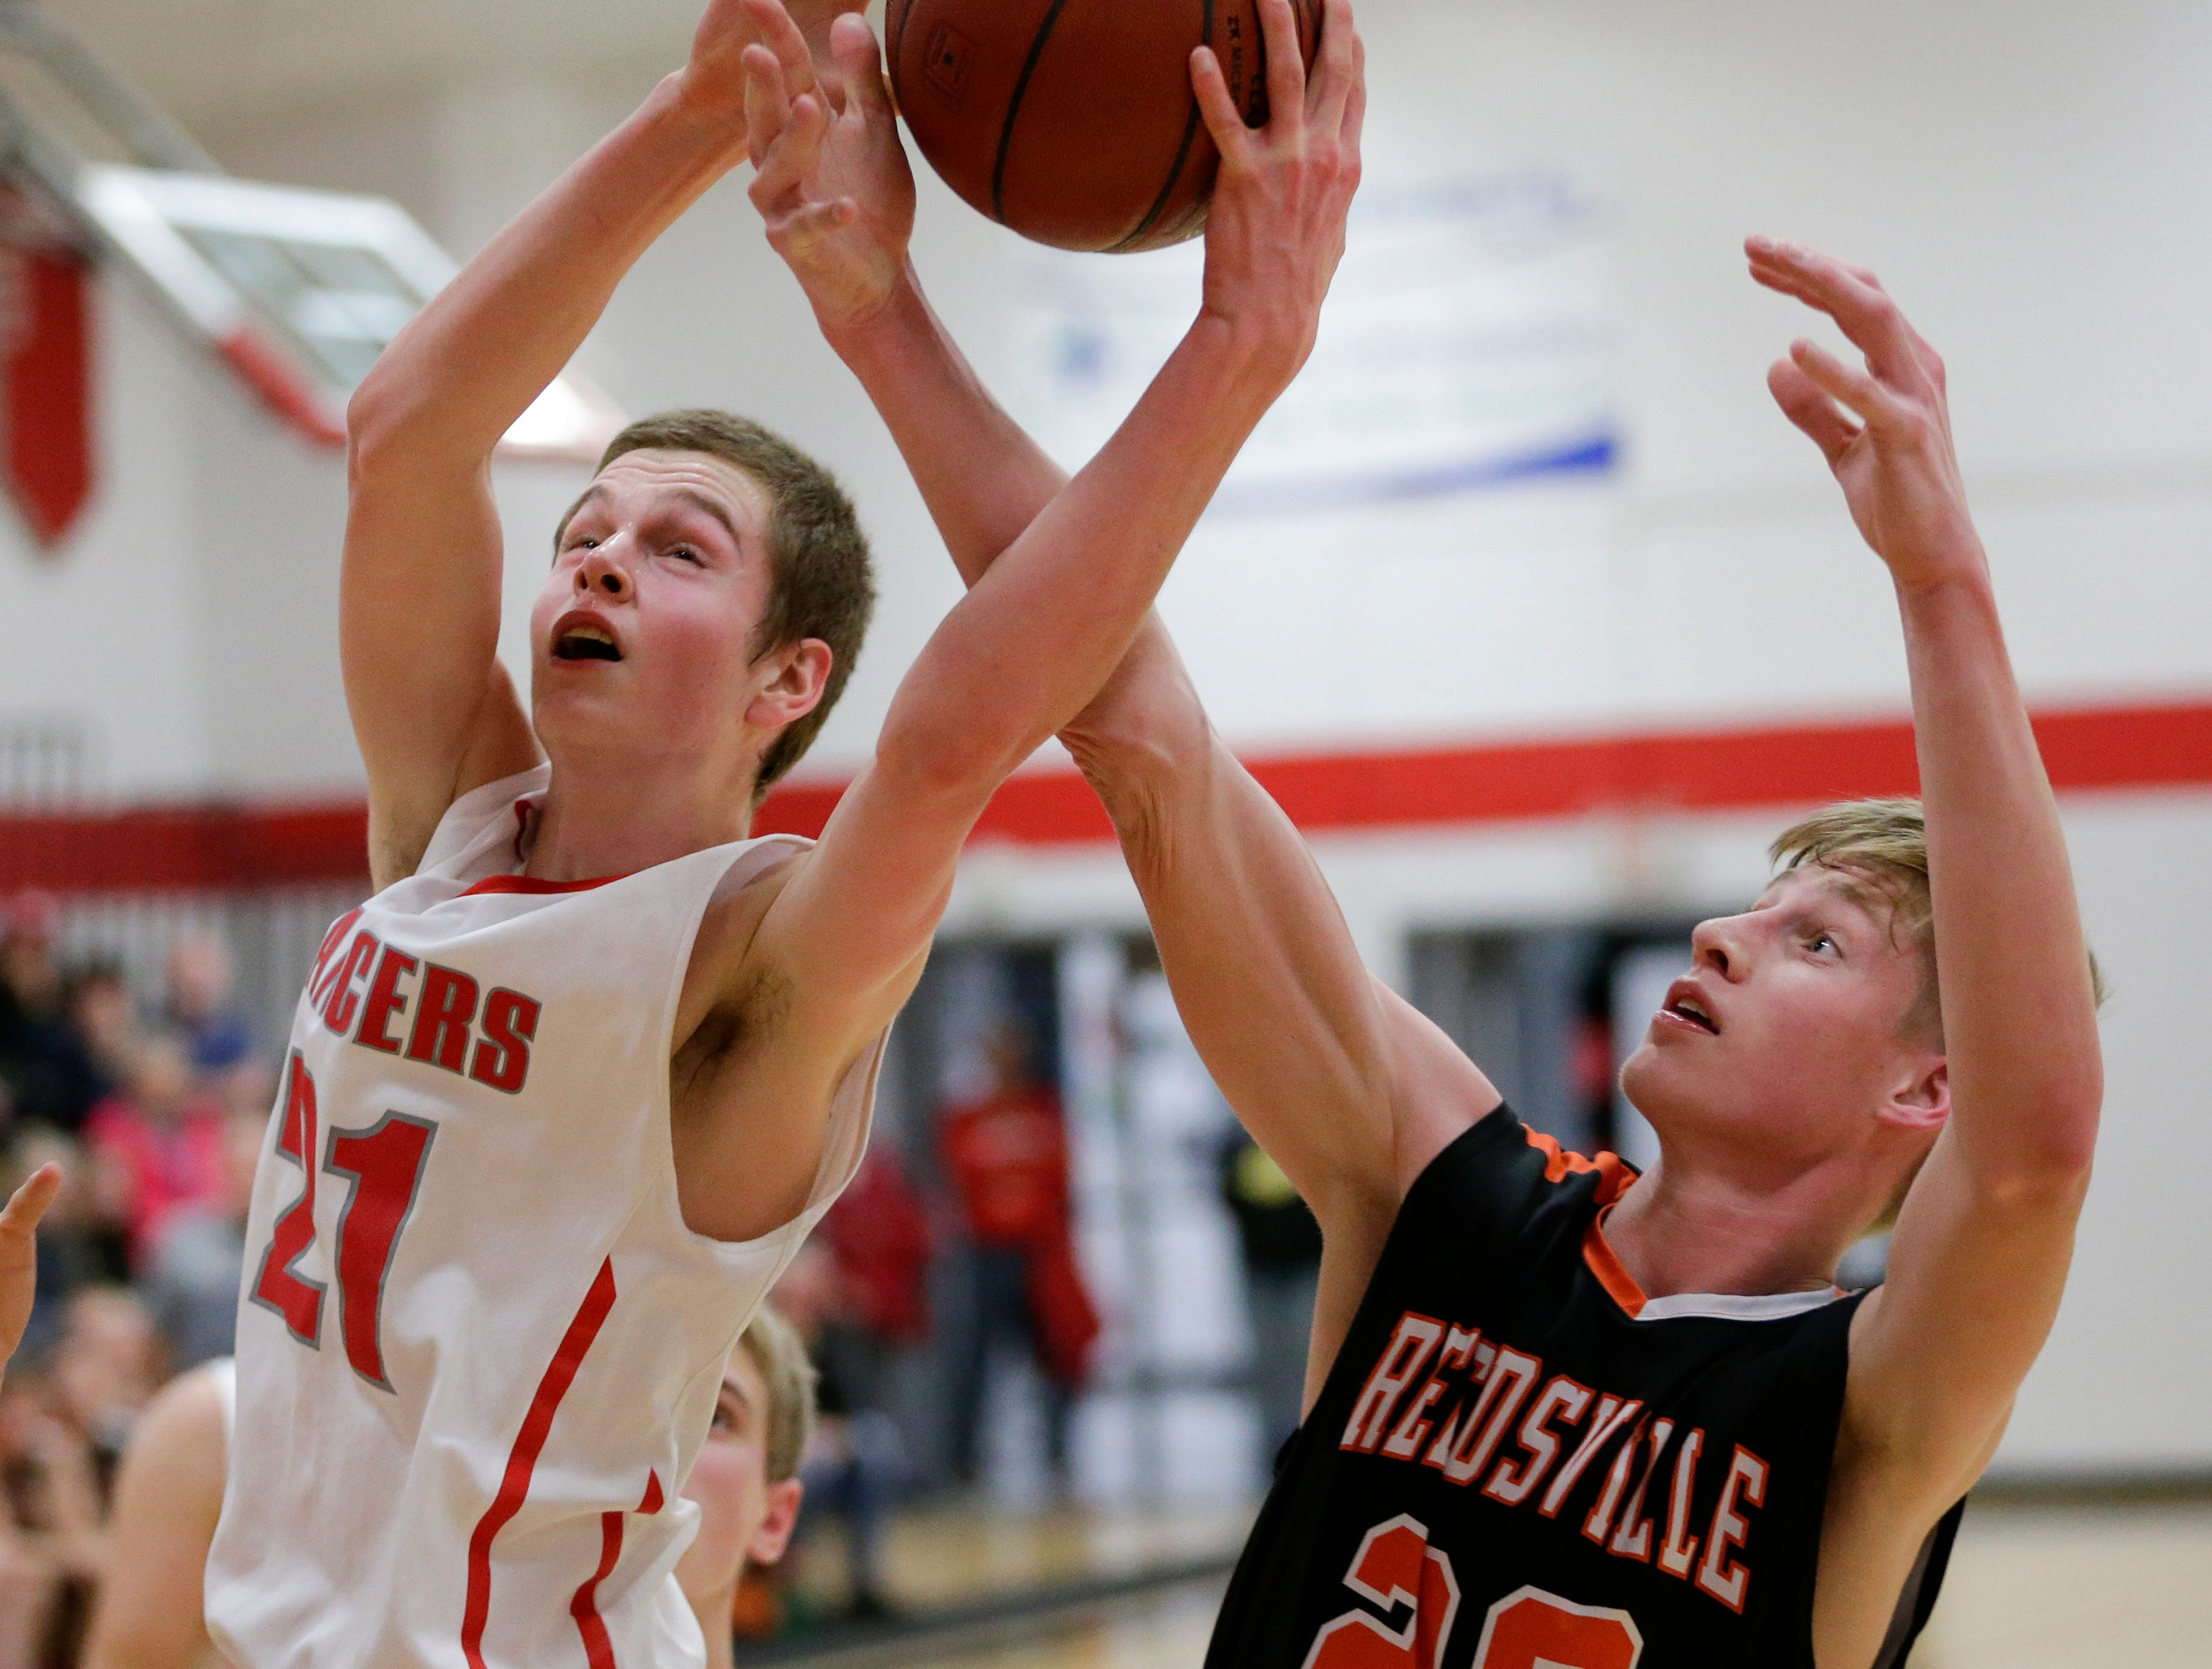 Reedsville's Cade Hafkey swipes a rebound from Manitowoc Lutheran's Kaleb Engelbrecht at Manitowoc Lutheran High School Thursday, December 20, 2018, in Manitowoc, Wis. Joshua Clark/USA TODAY NETWORK-Wisconsin